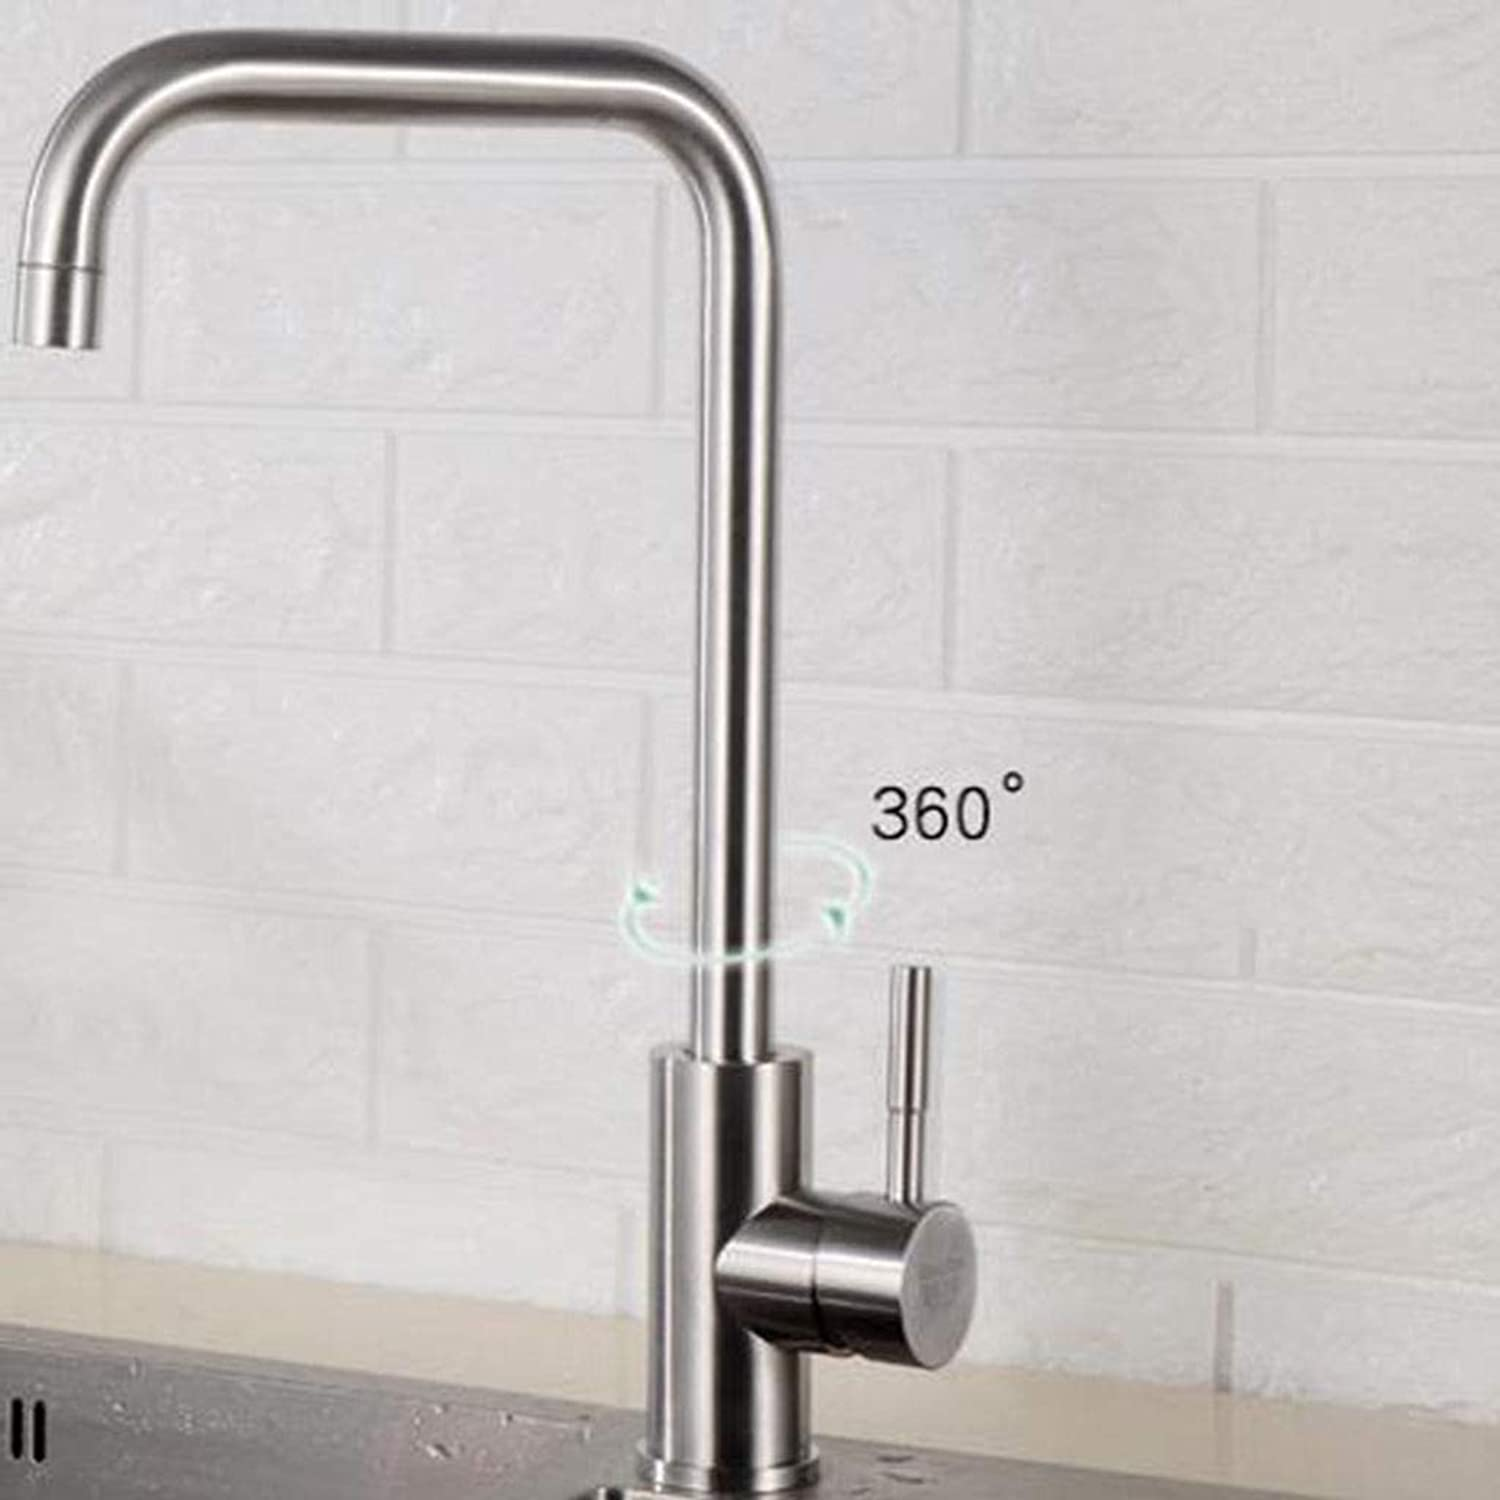 304stainless Steel Kitchen Sink Faucet, Hot and Cold Washbasin Hose with Drain Assembly Head hot and Cold Stainless Steel hot and Cold Kitchen Faucet High arc with Drain Assembly -A